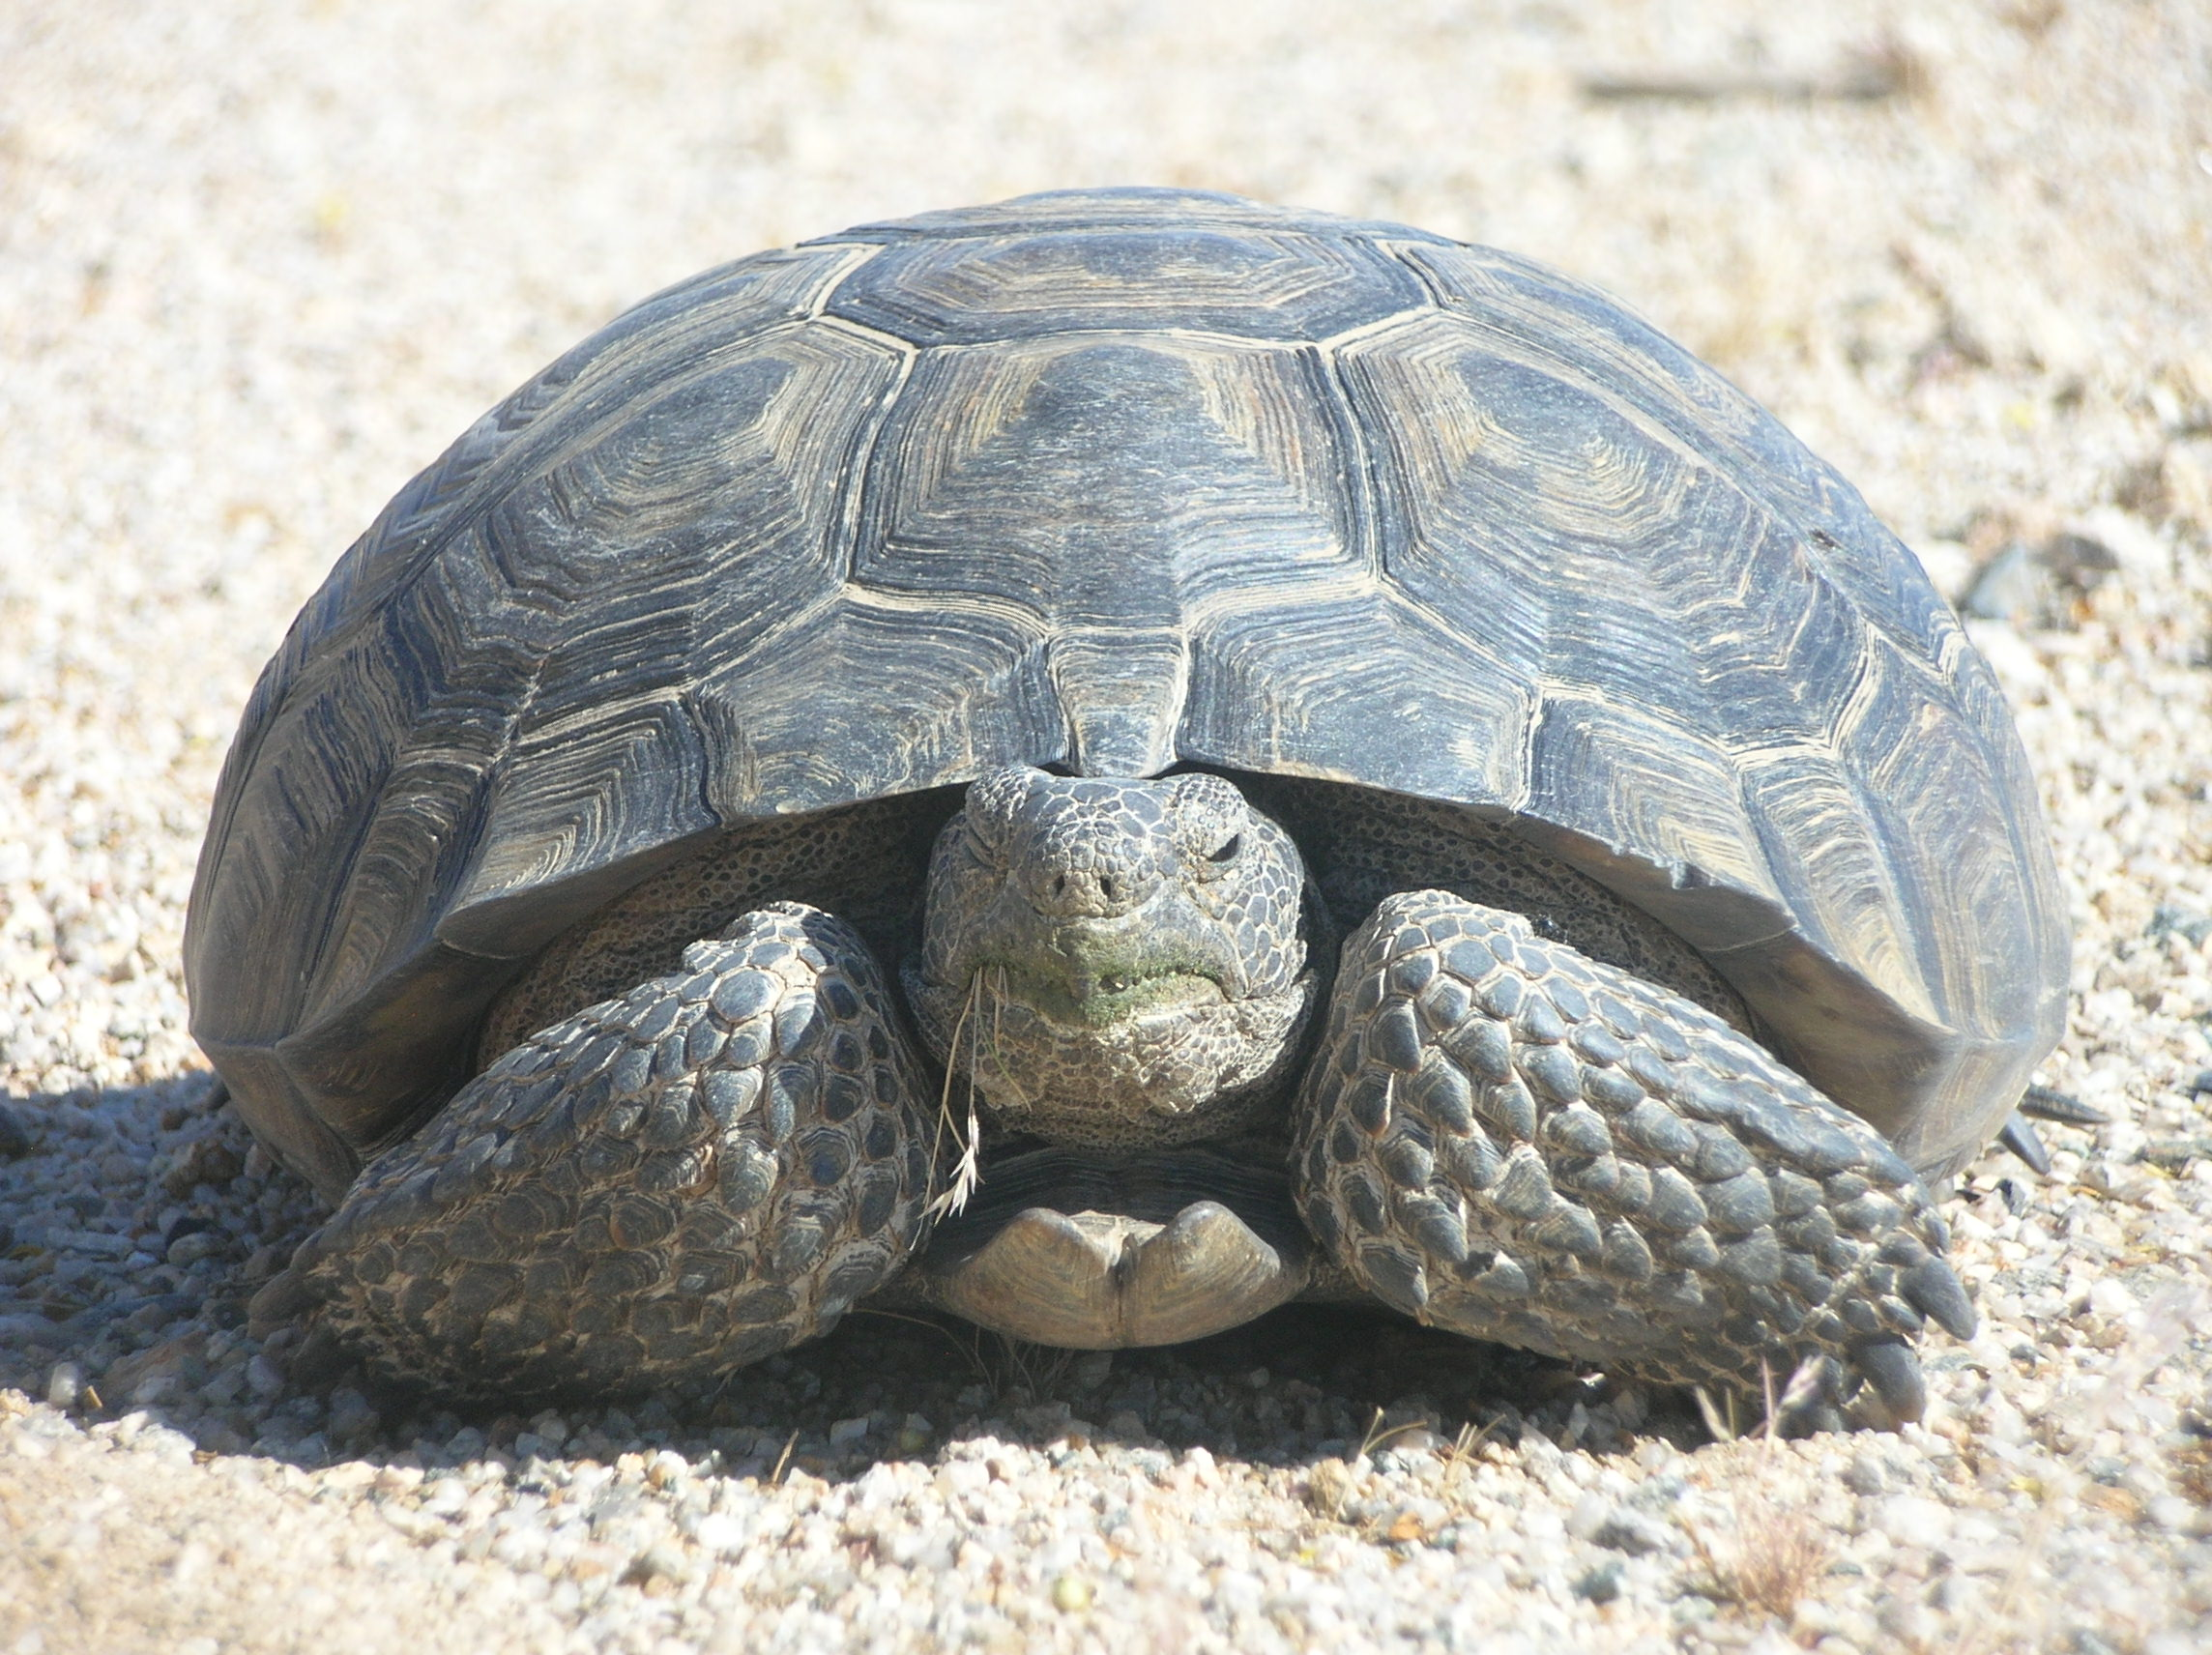 The Mojave desert tortoise (Gopherus agassizii)